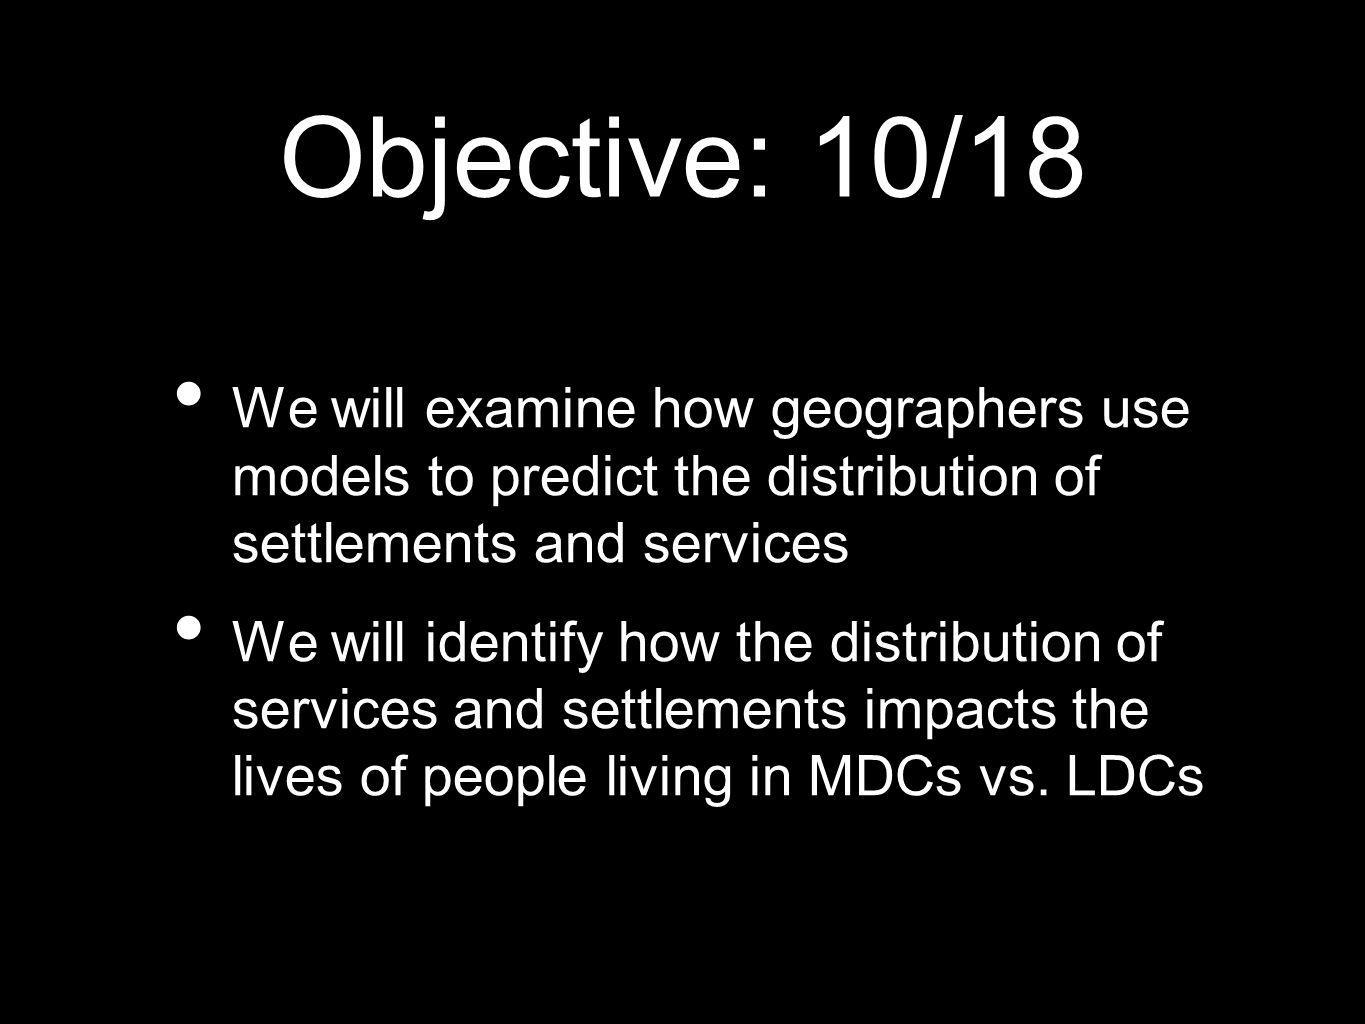 Objective: 10/18We will examine how geographers use models to predict the distribution of settlements and services.